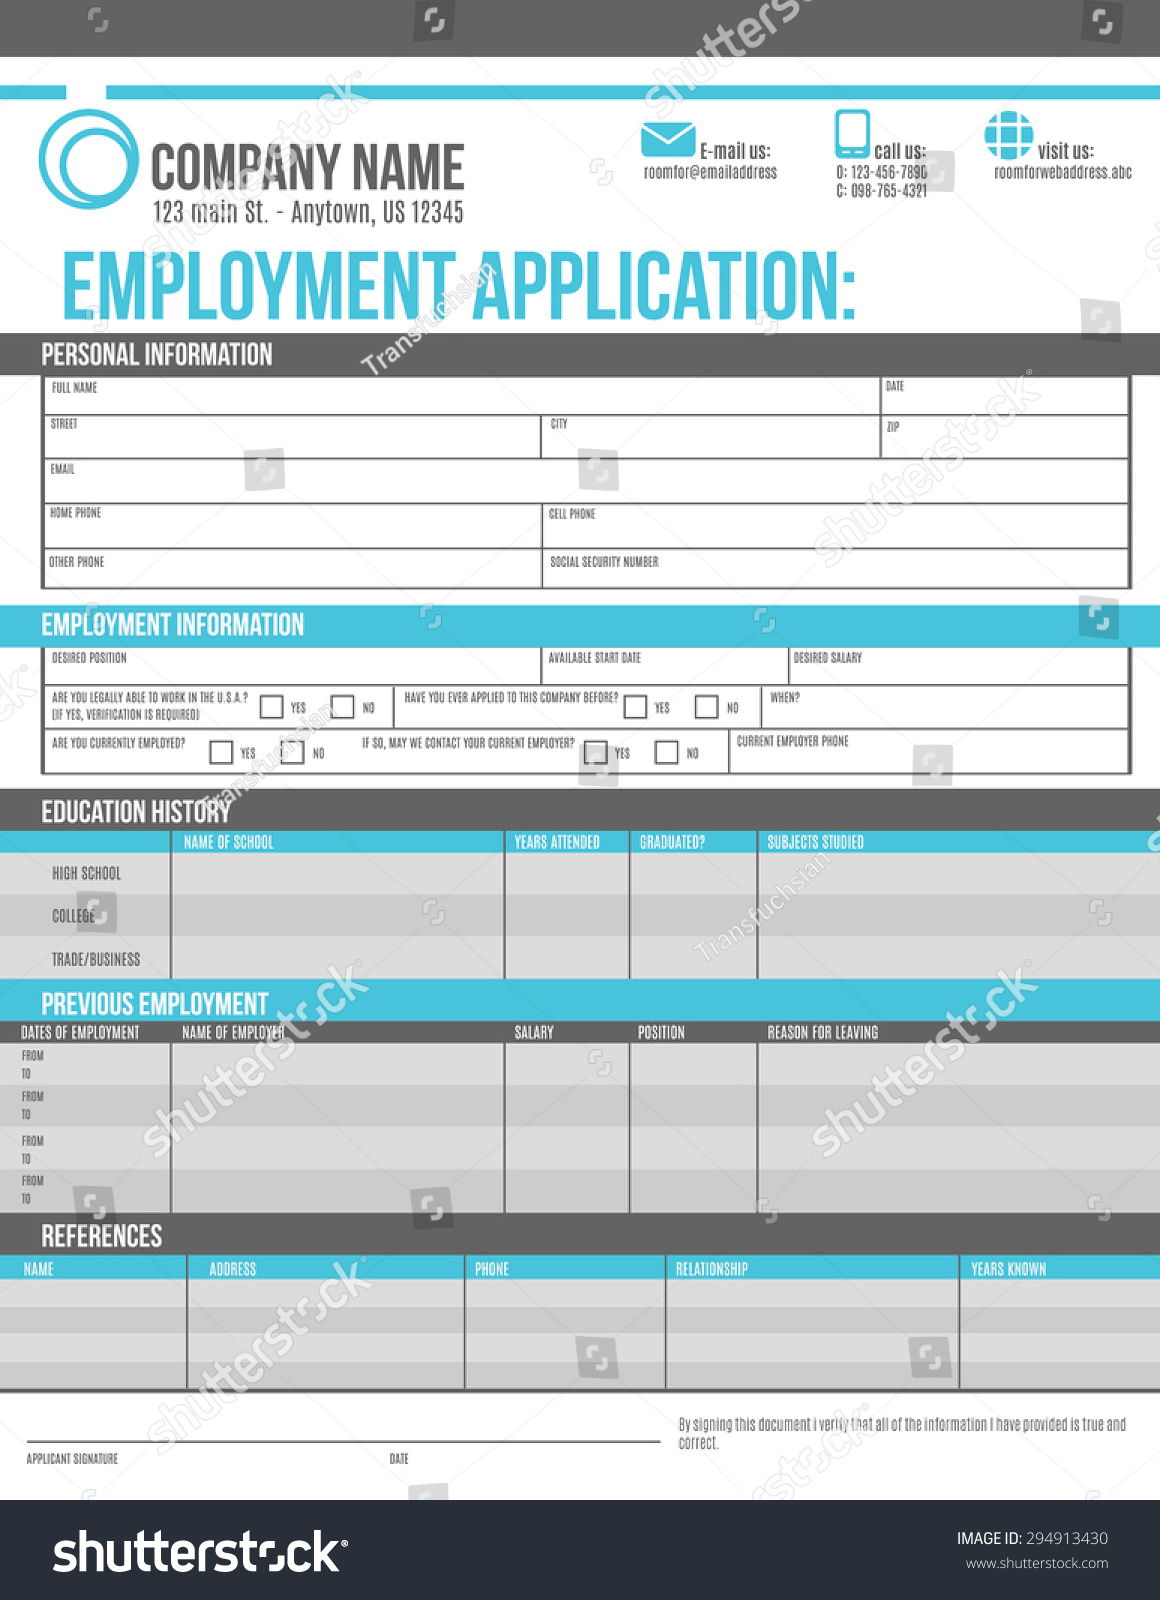 customizable employment job application template design